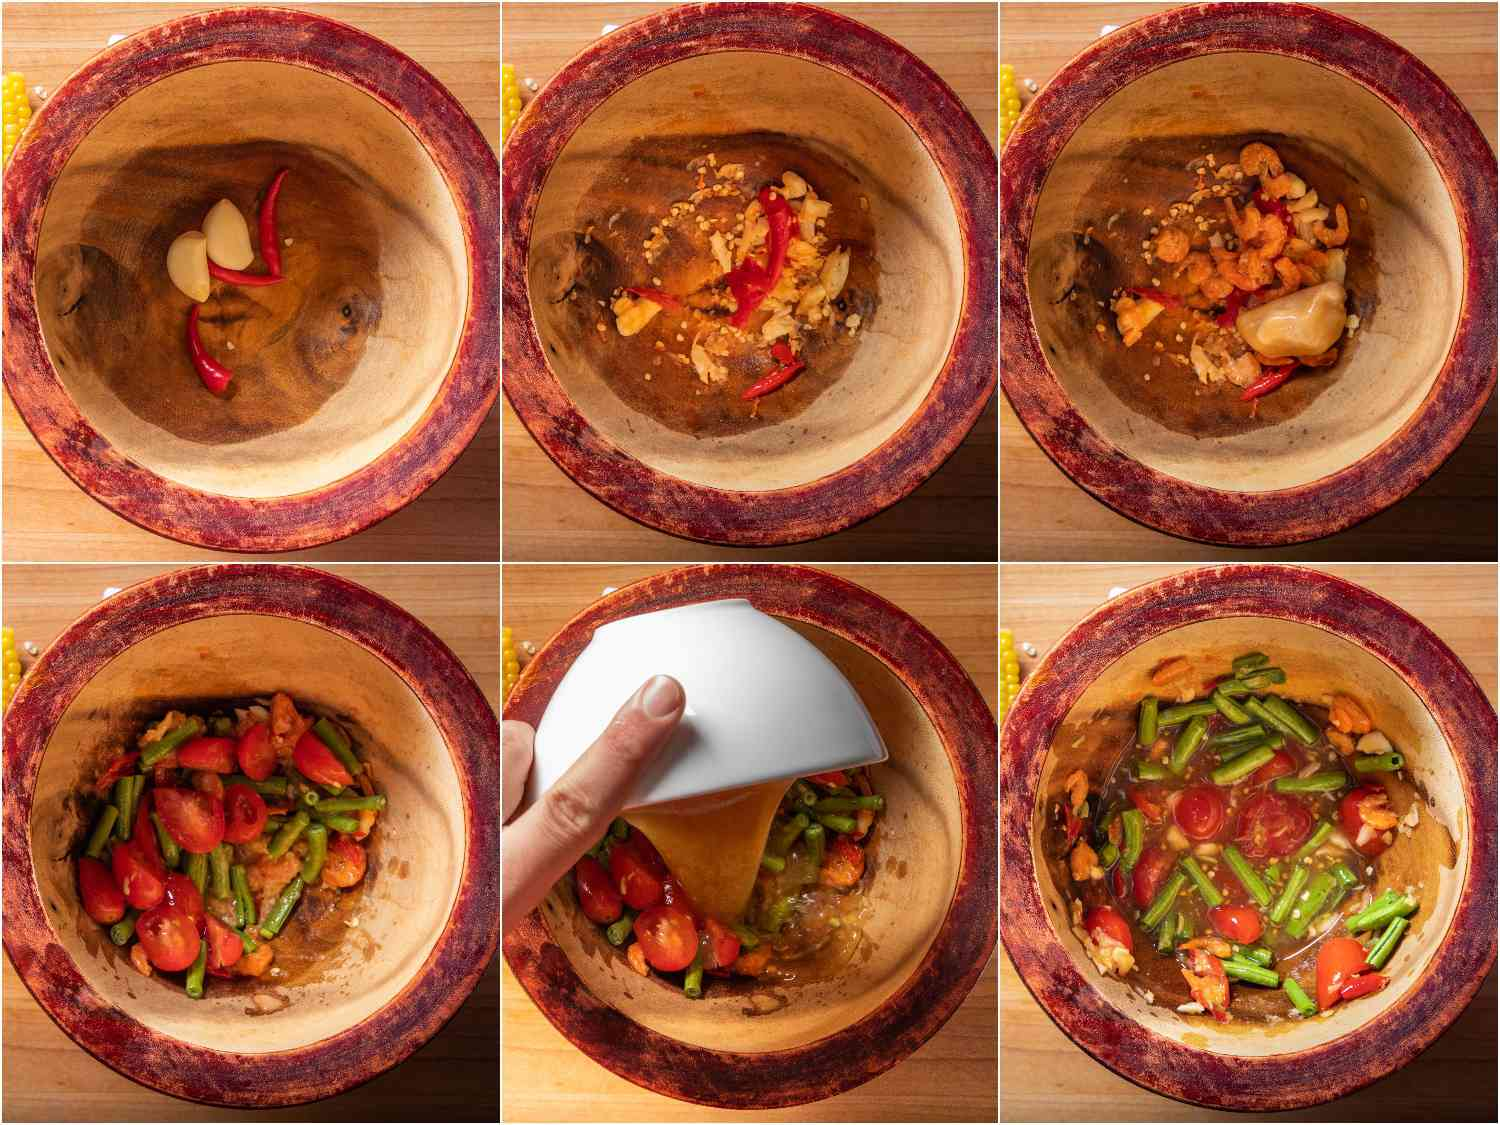 Lightly pounding ingredients for the salad in a wooden mortar and pestle, starting with garlic and chiles, followed by dried shrimp and palm sugar, long beans and cherry tomatoes, and fish sauce and lime juice.